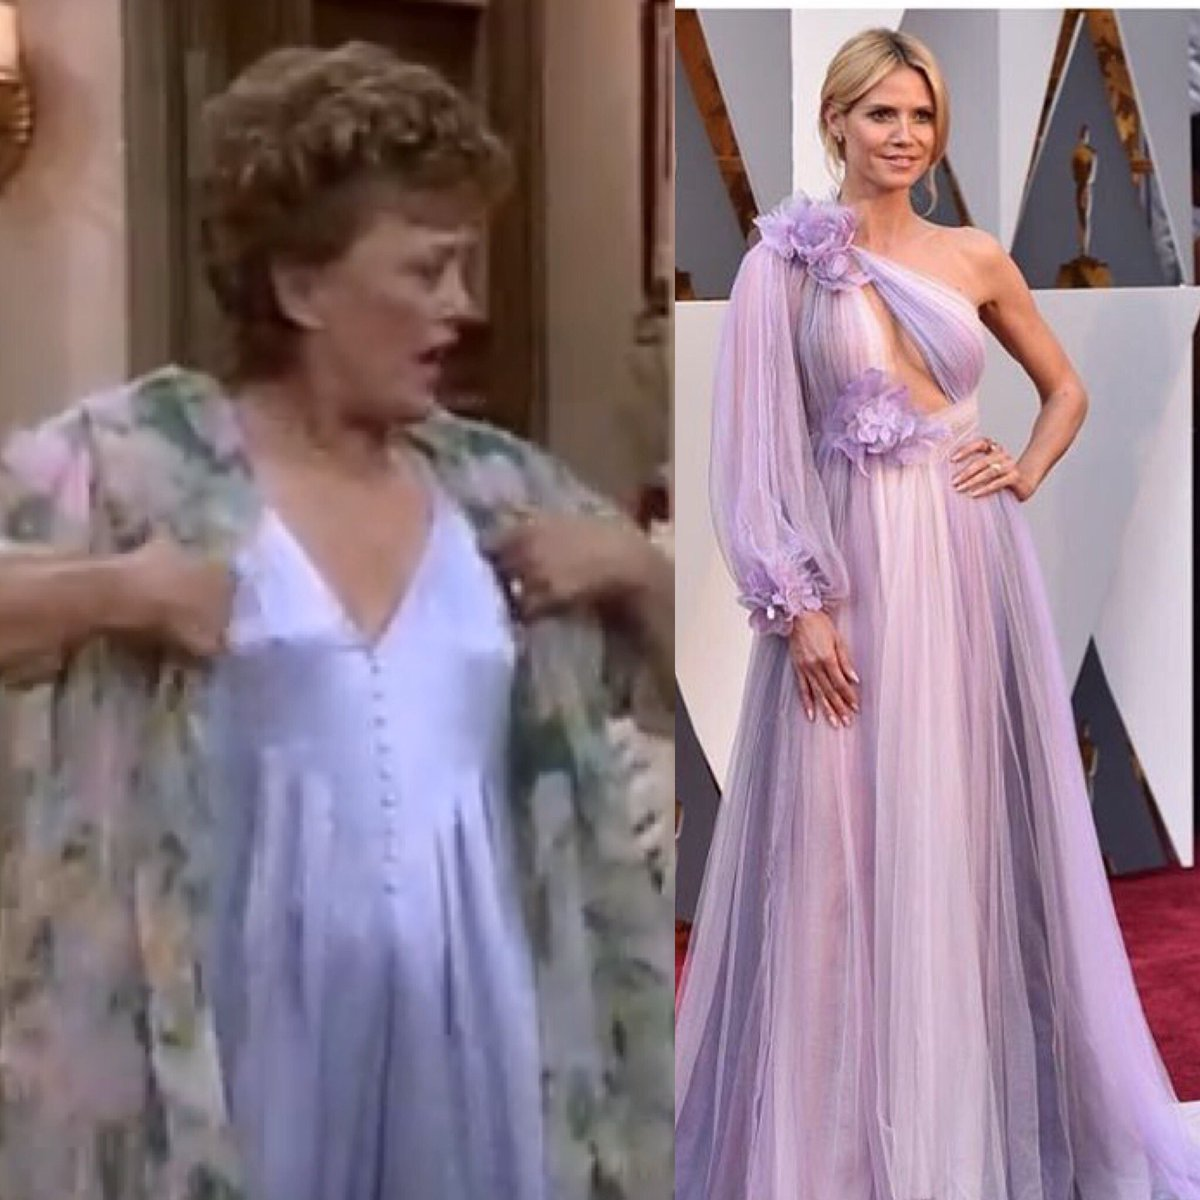 I think @heidiklum looks amazing in that Blanche Devereaux gown from the Golden Girls Collection #Oscars2016 https://t.co/1GxhBSq9M6